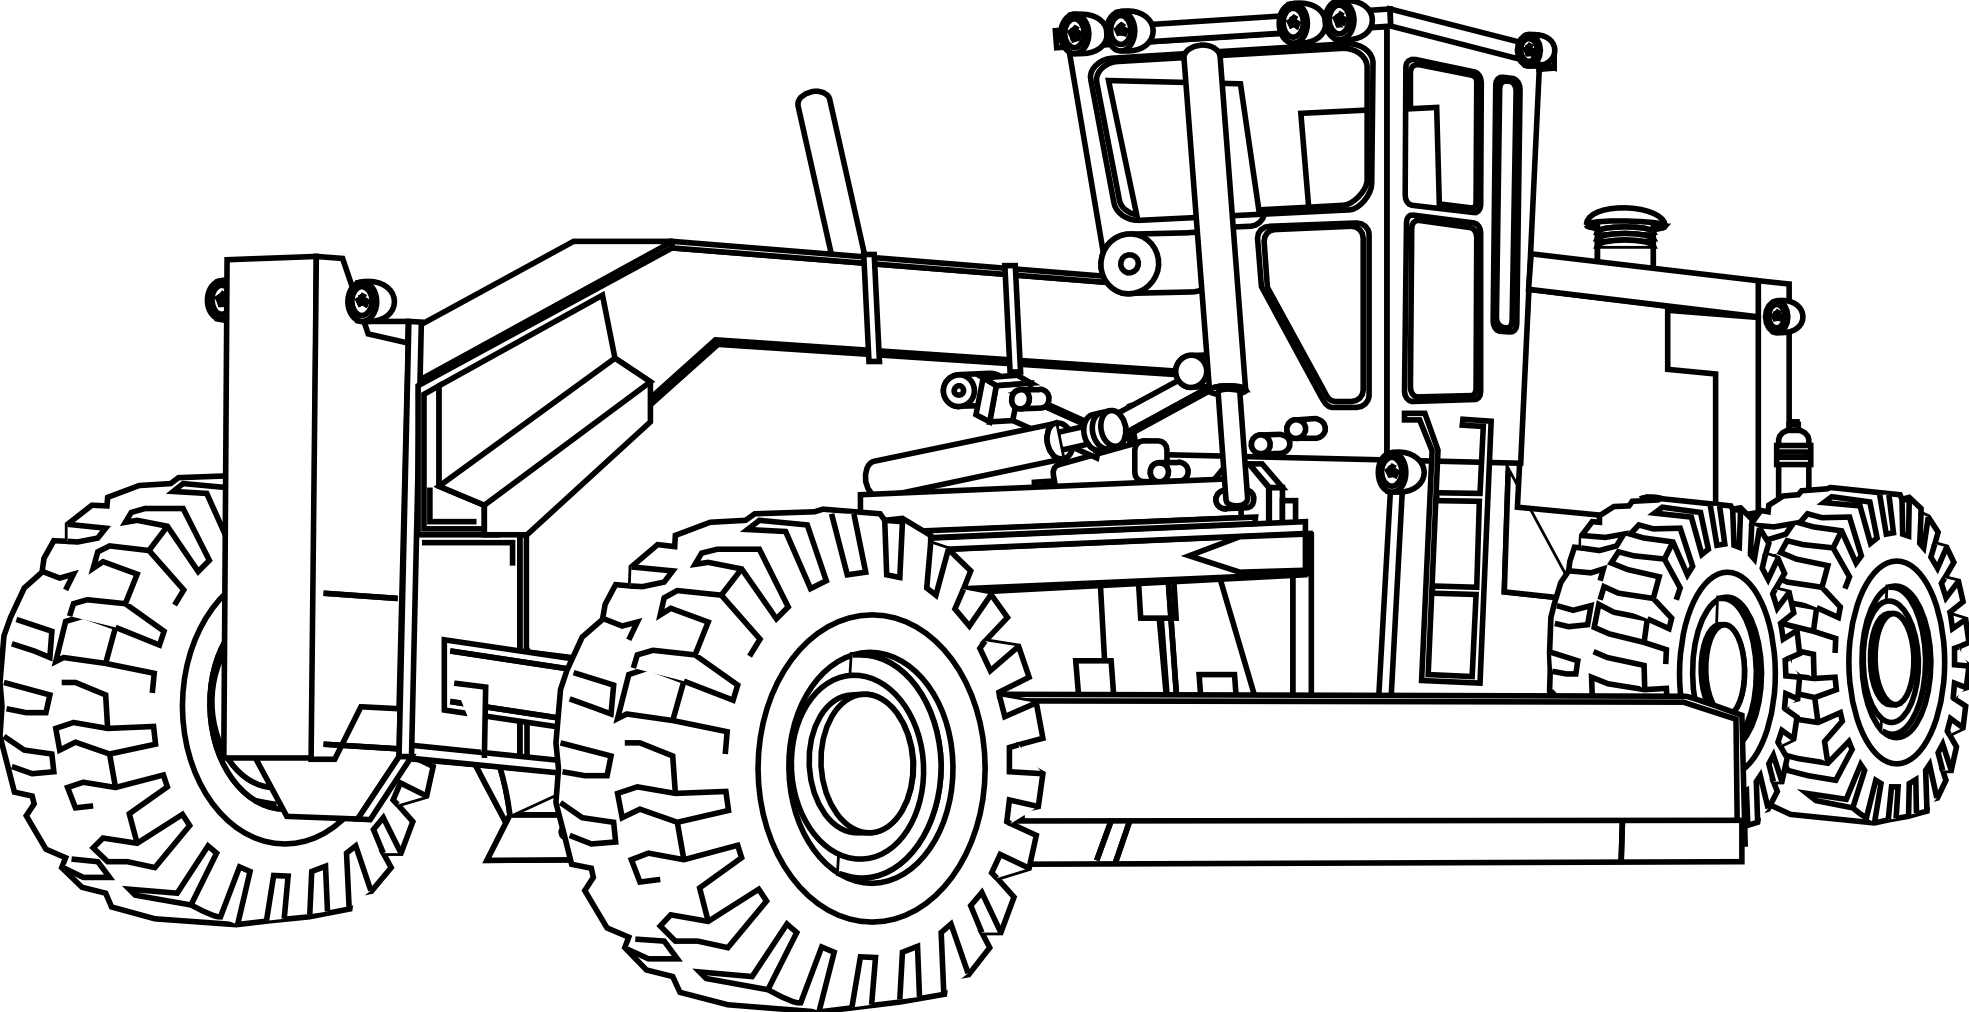 construction equipment coloring pages heavy equipment coloring pages at getcoloringscom free coloring construction equipment pages